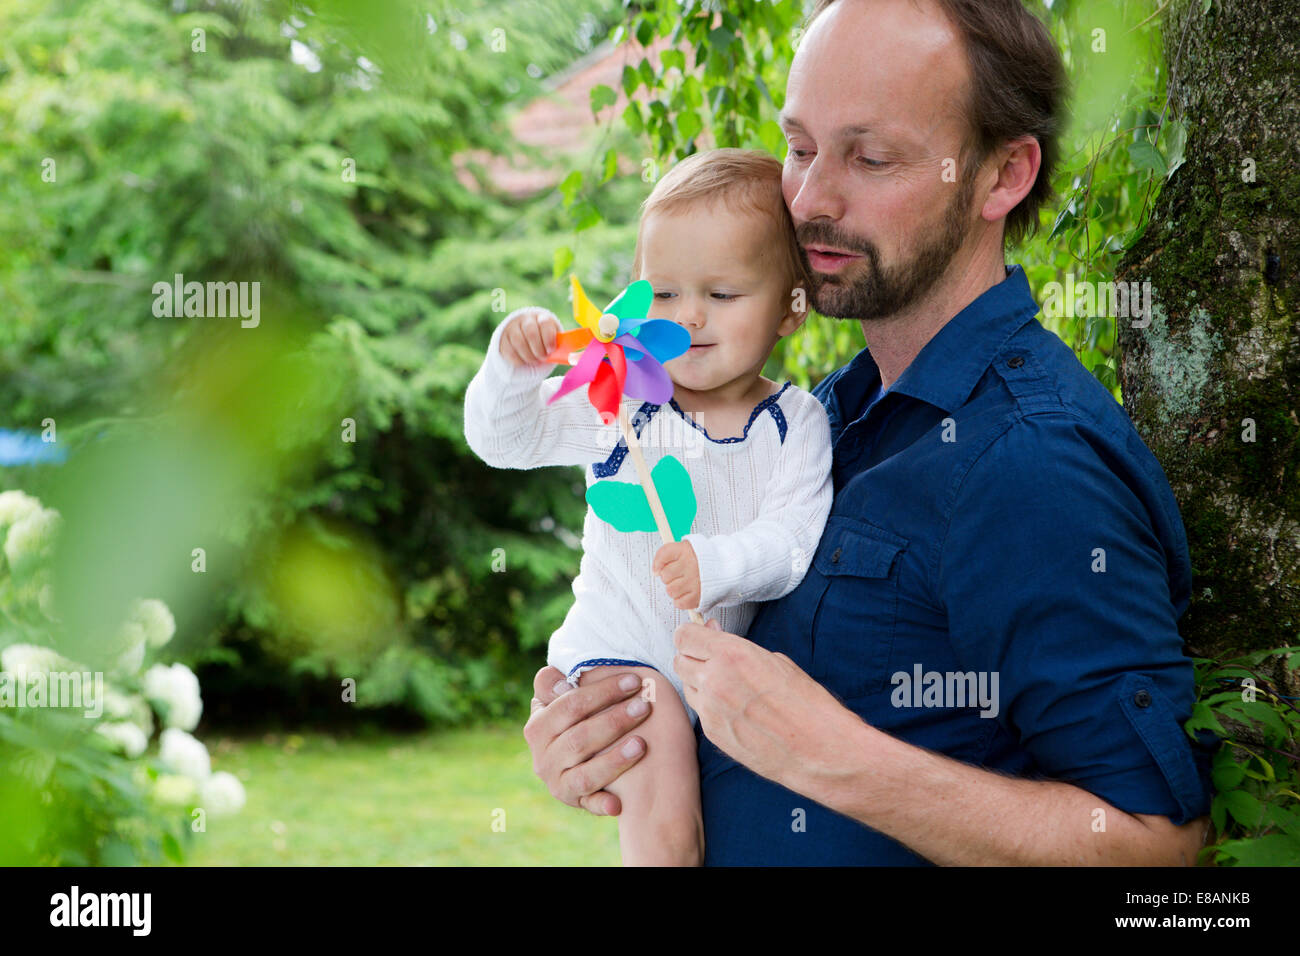 Father and baby daughter playing with pinwheel in garden - Stock Image